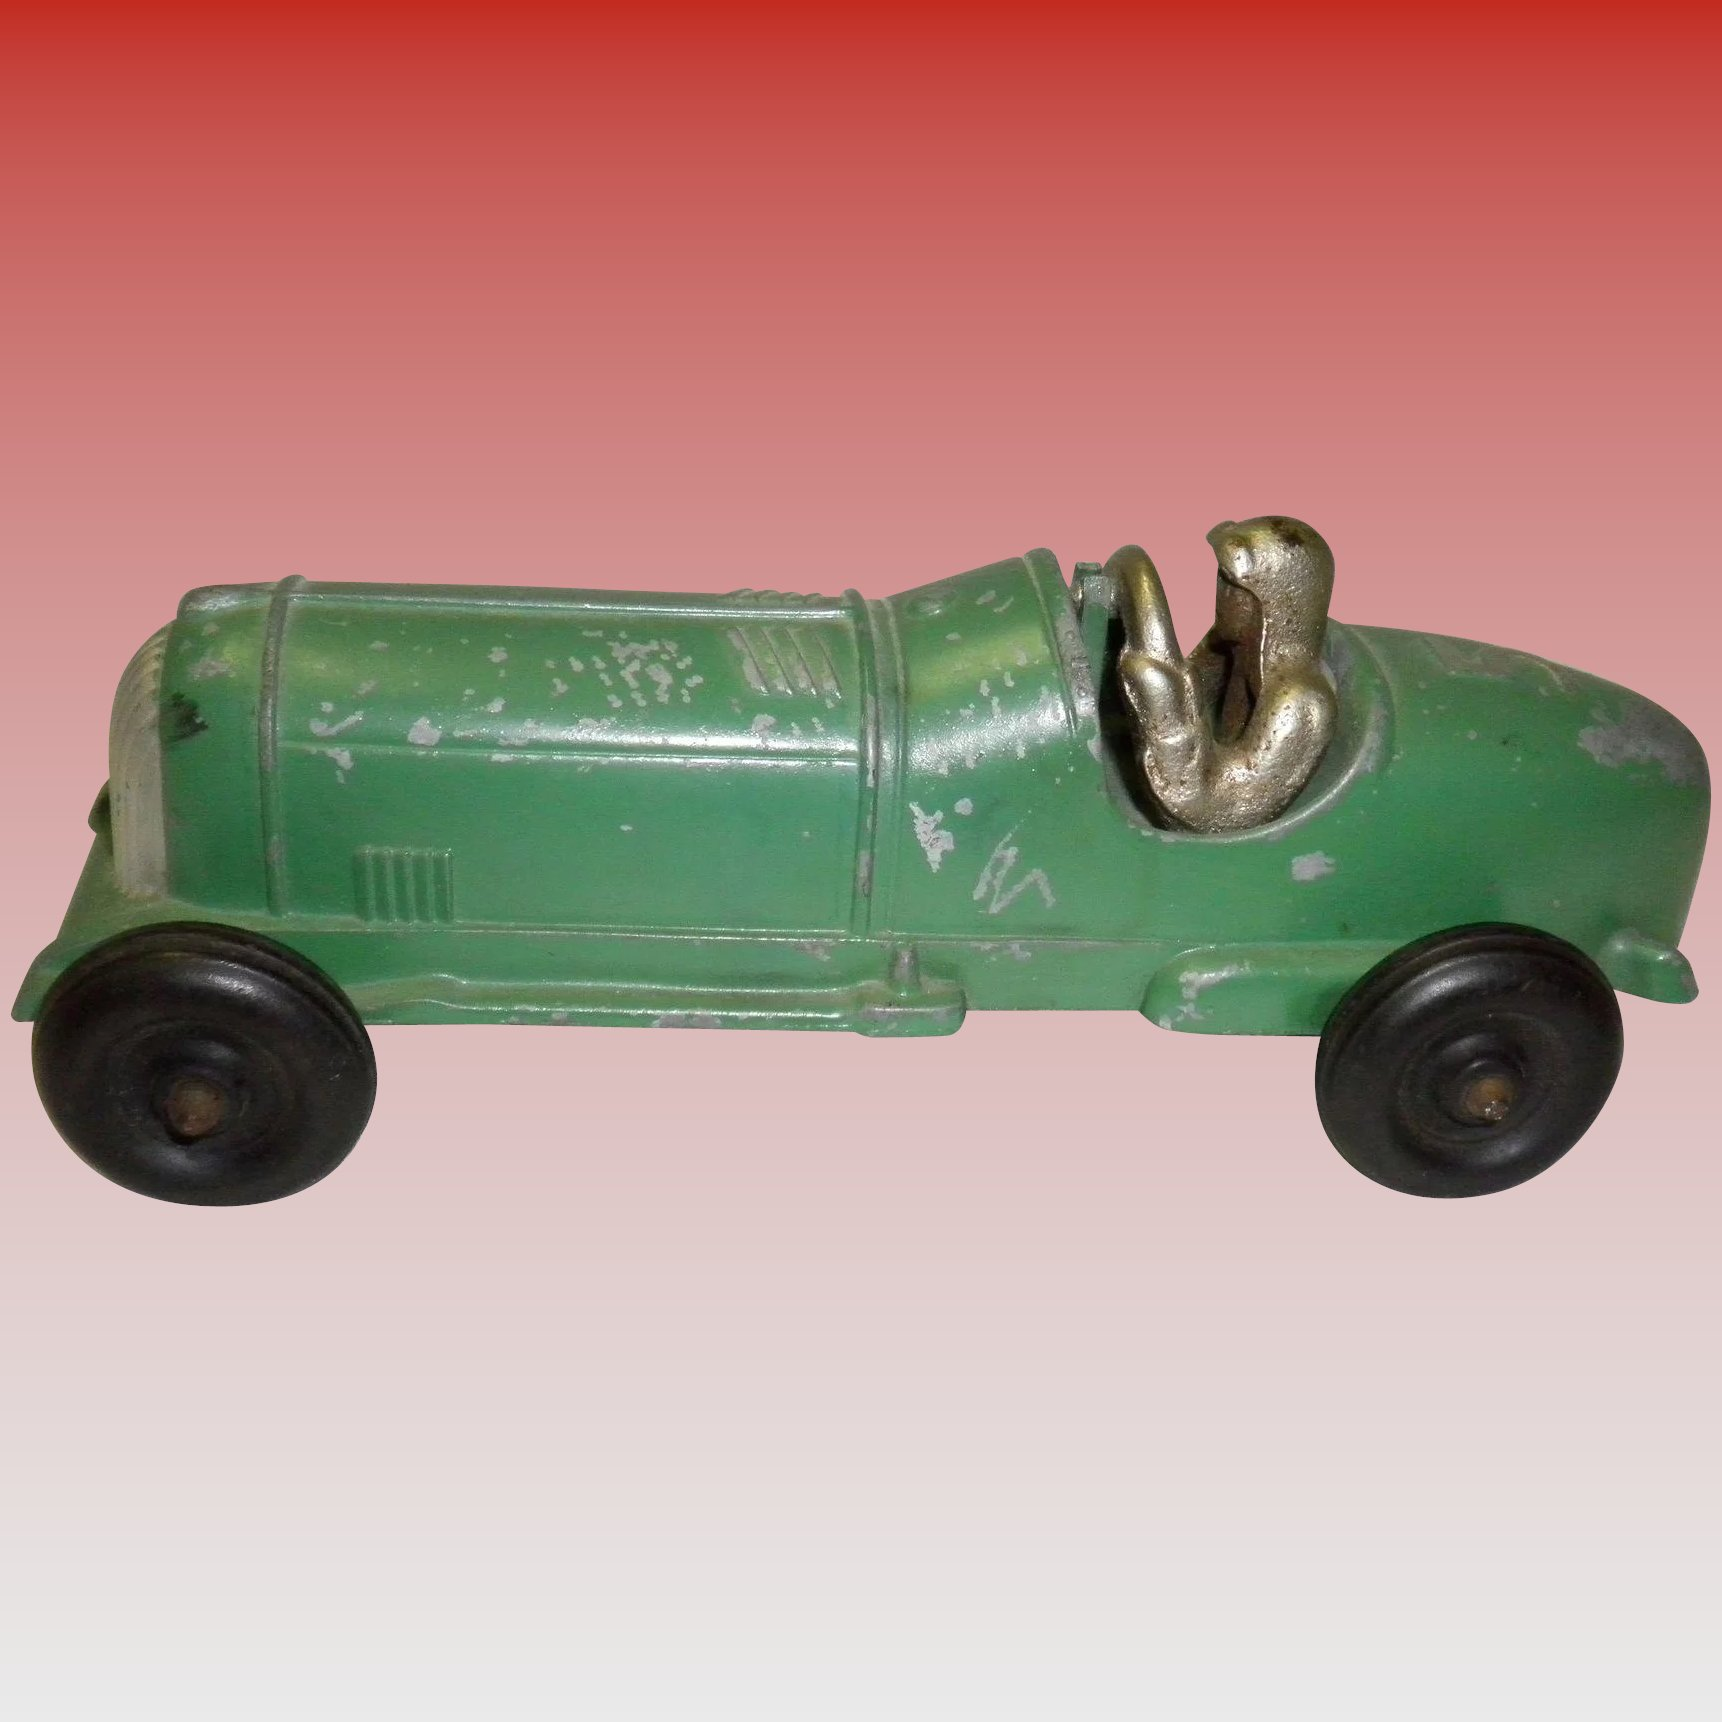 Hubley Die-Cast Race Car #5 : Cameo Antique Mall